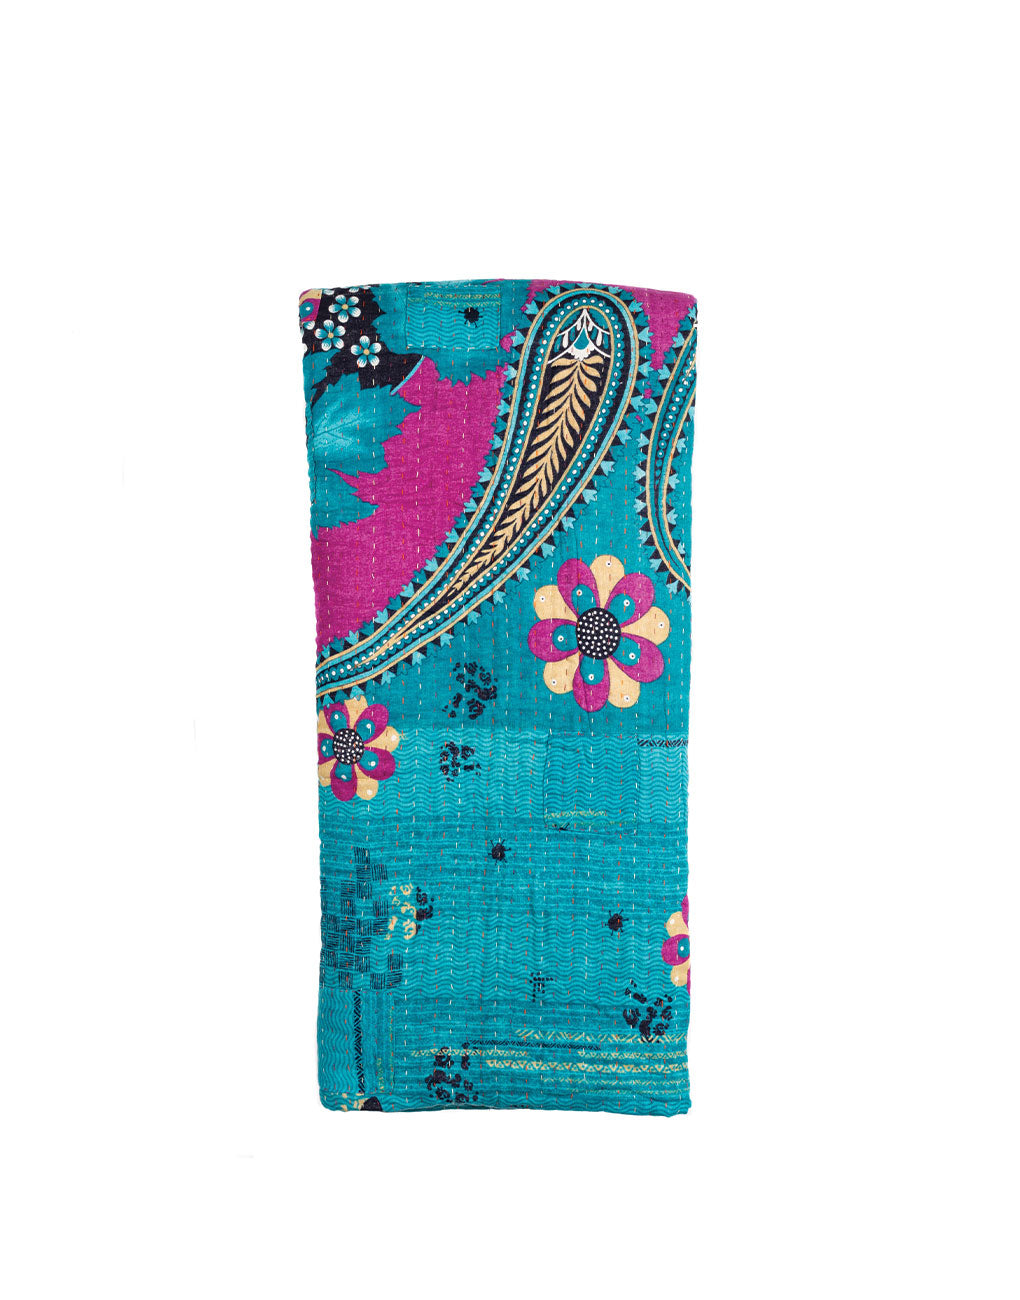 Small Kantha Quilt | The Little Market